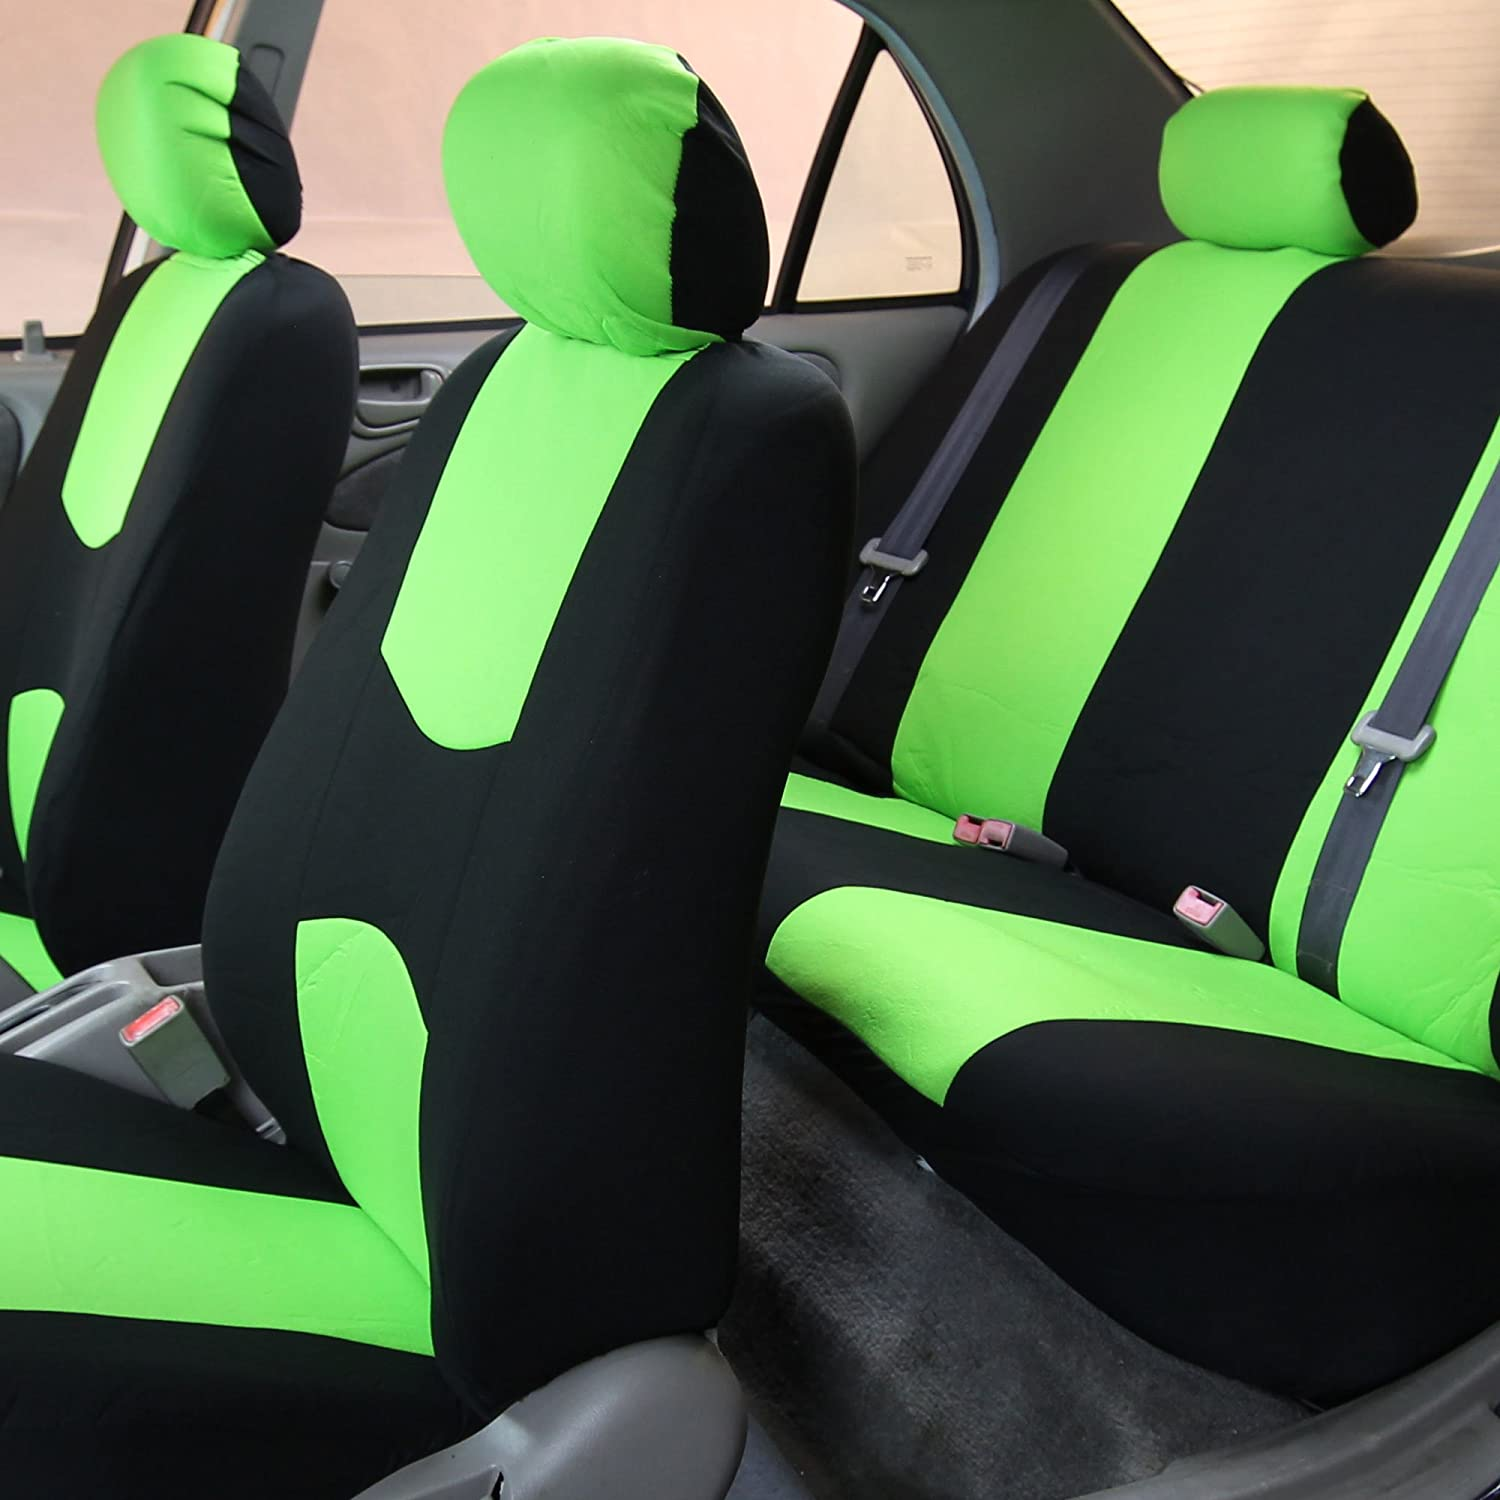 Full Set F14403 Flat Cloth Seat Covers FH Group FB050115 Universal Fit for Cars Trucks /& SUVs Green